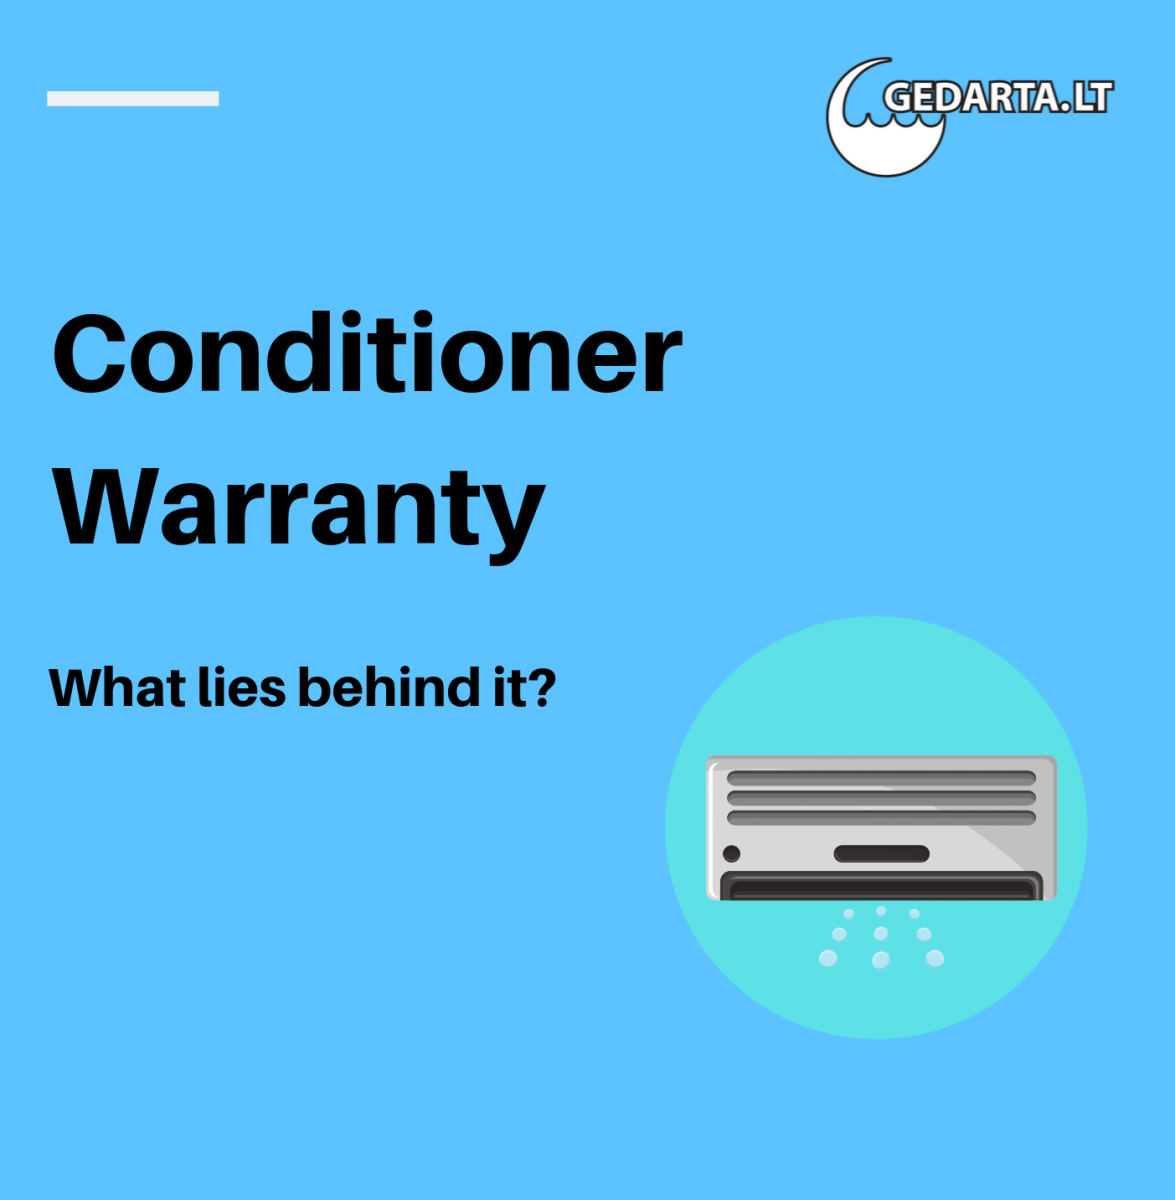 Conditioner Warranty - What lies behind it?